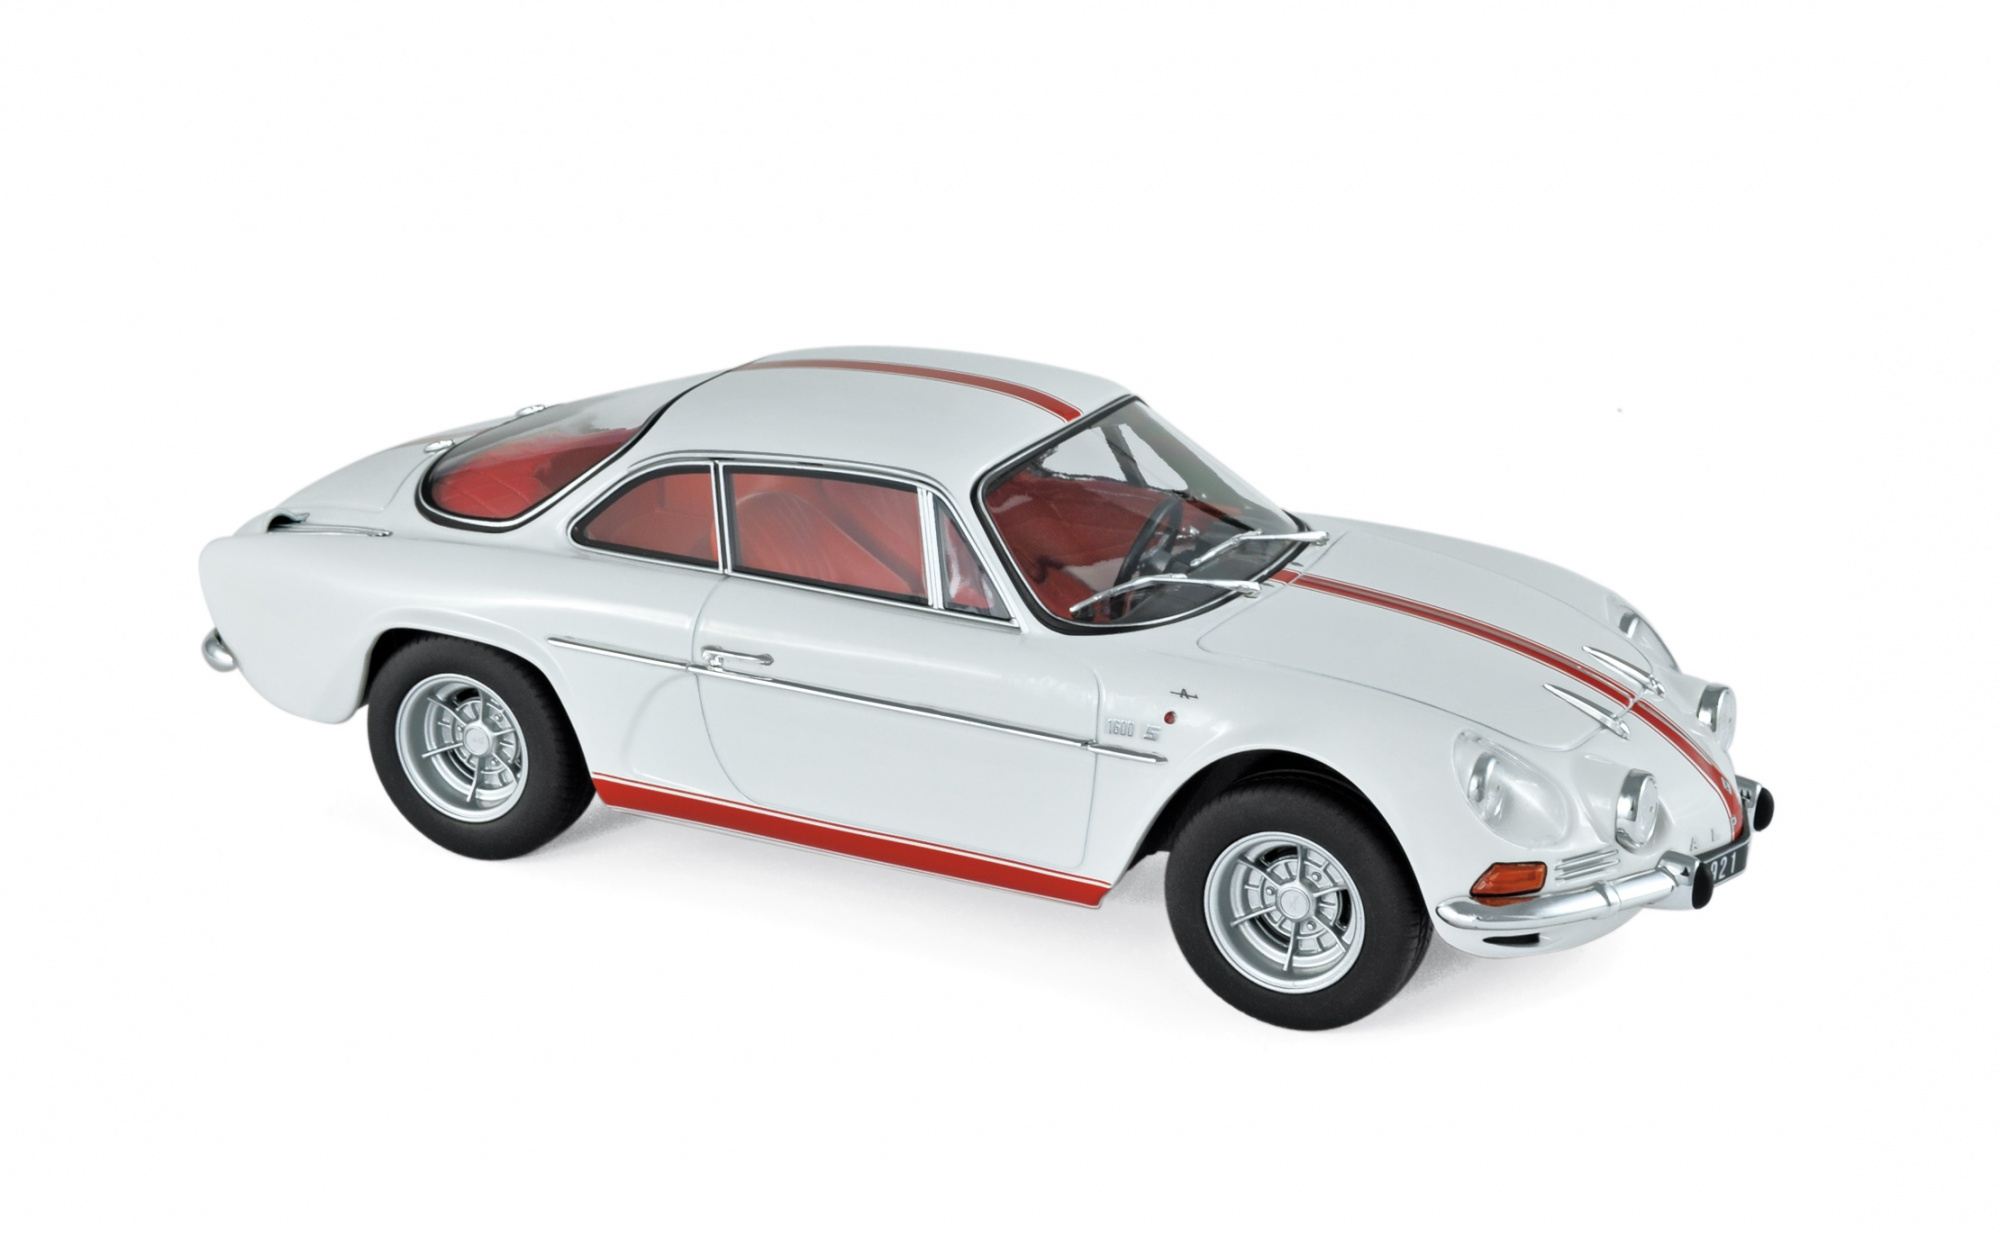 Alpine Renault A110 1600S 1971 White with red stripping